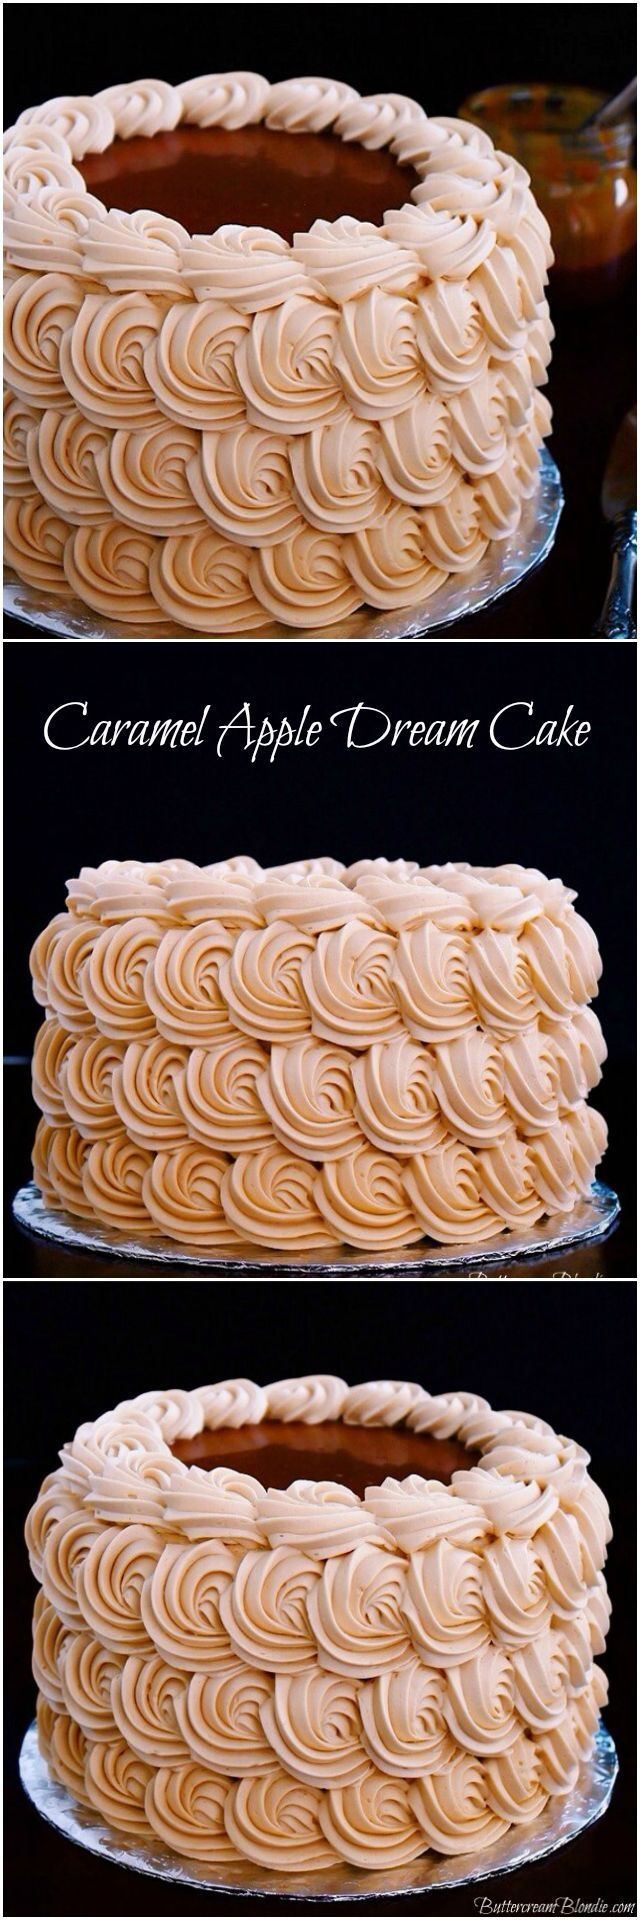 Caramel Apple Dream Cake - incredible apple spice cake filled with luscious caramel frosting! | ButtercreamBlondie.com